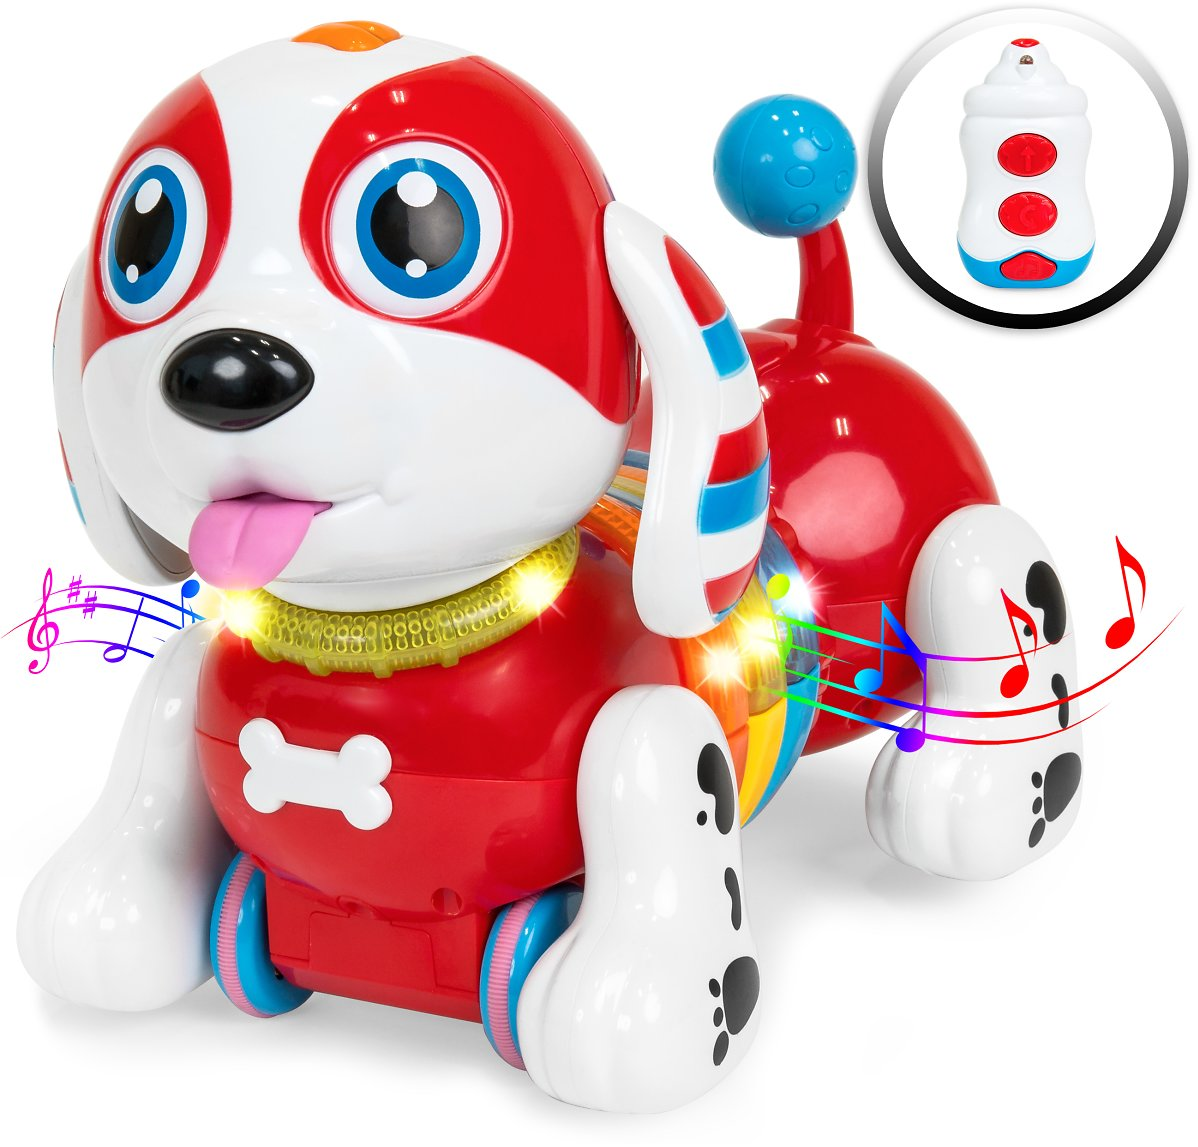 Best Choice Products Kids Interactive Dancing RC Robotic Toy Dog w/ Music, Touch Response, Catchphrases, Light-Up Body